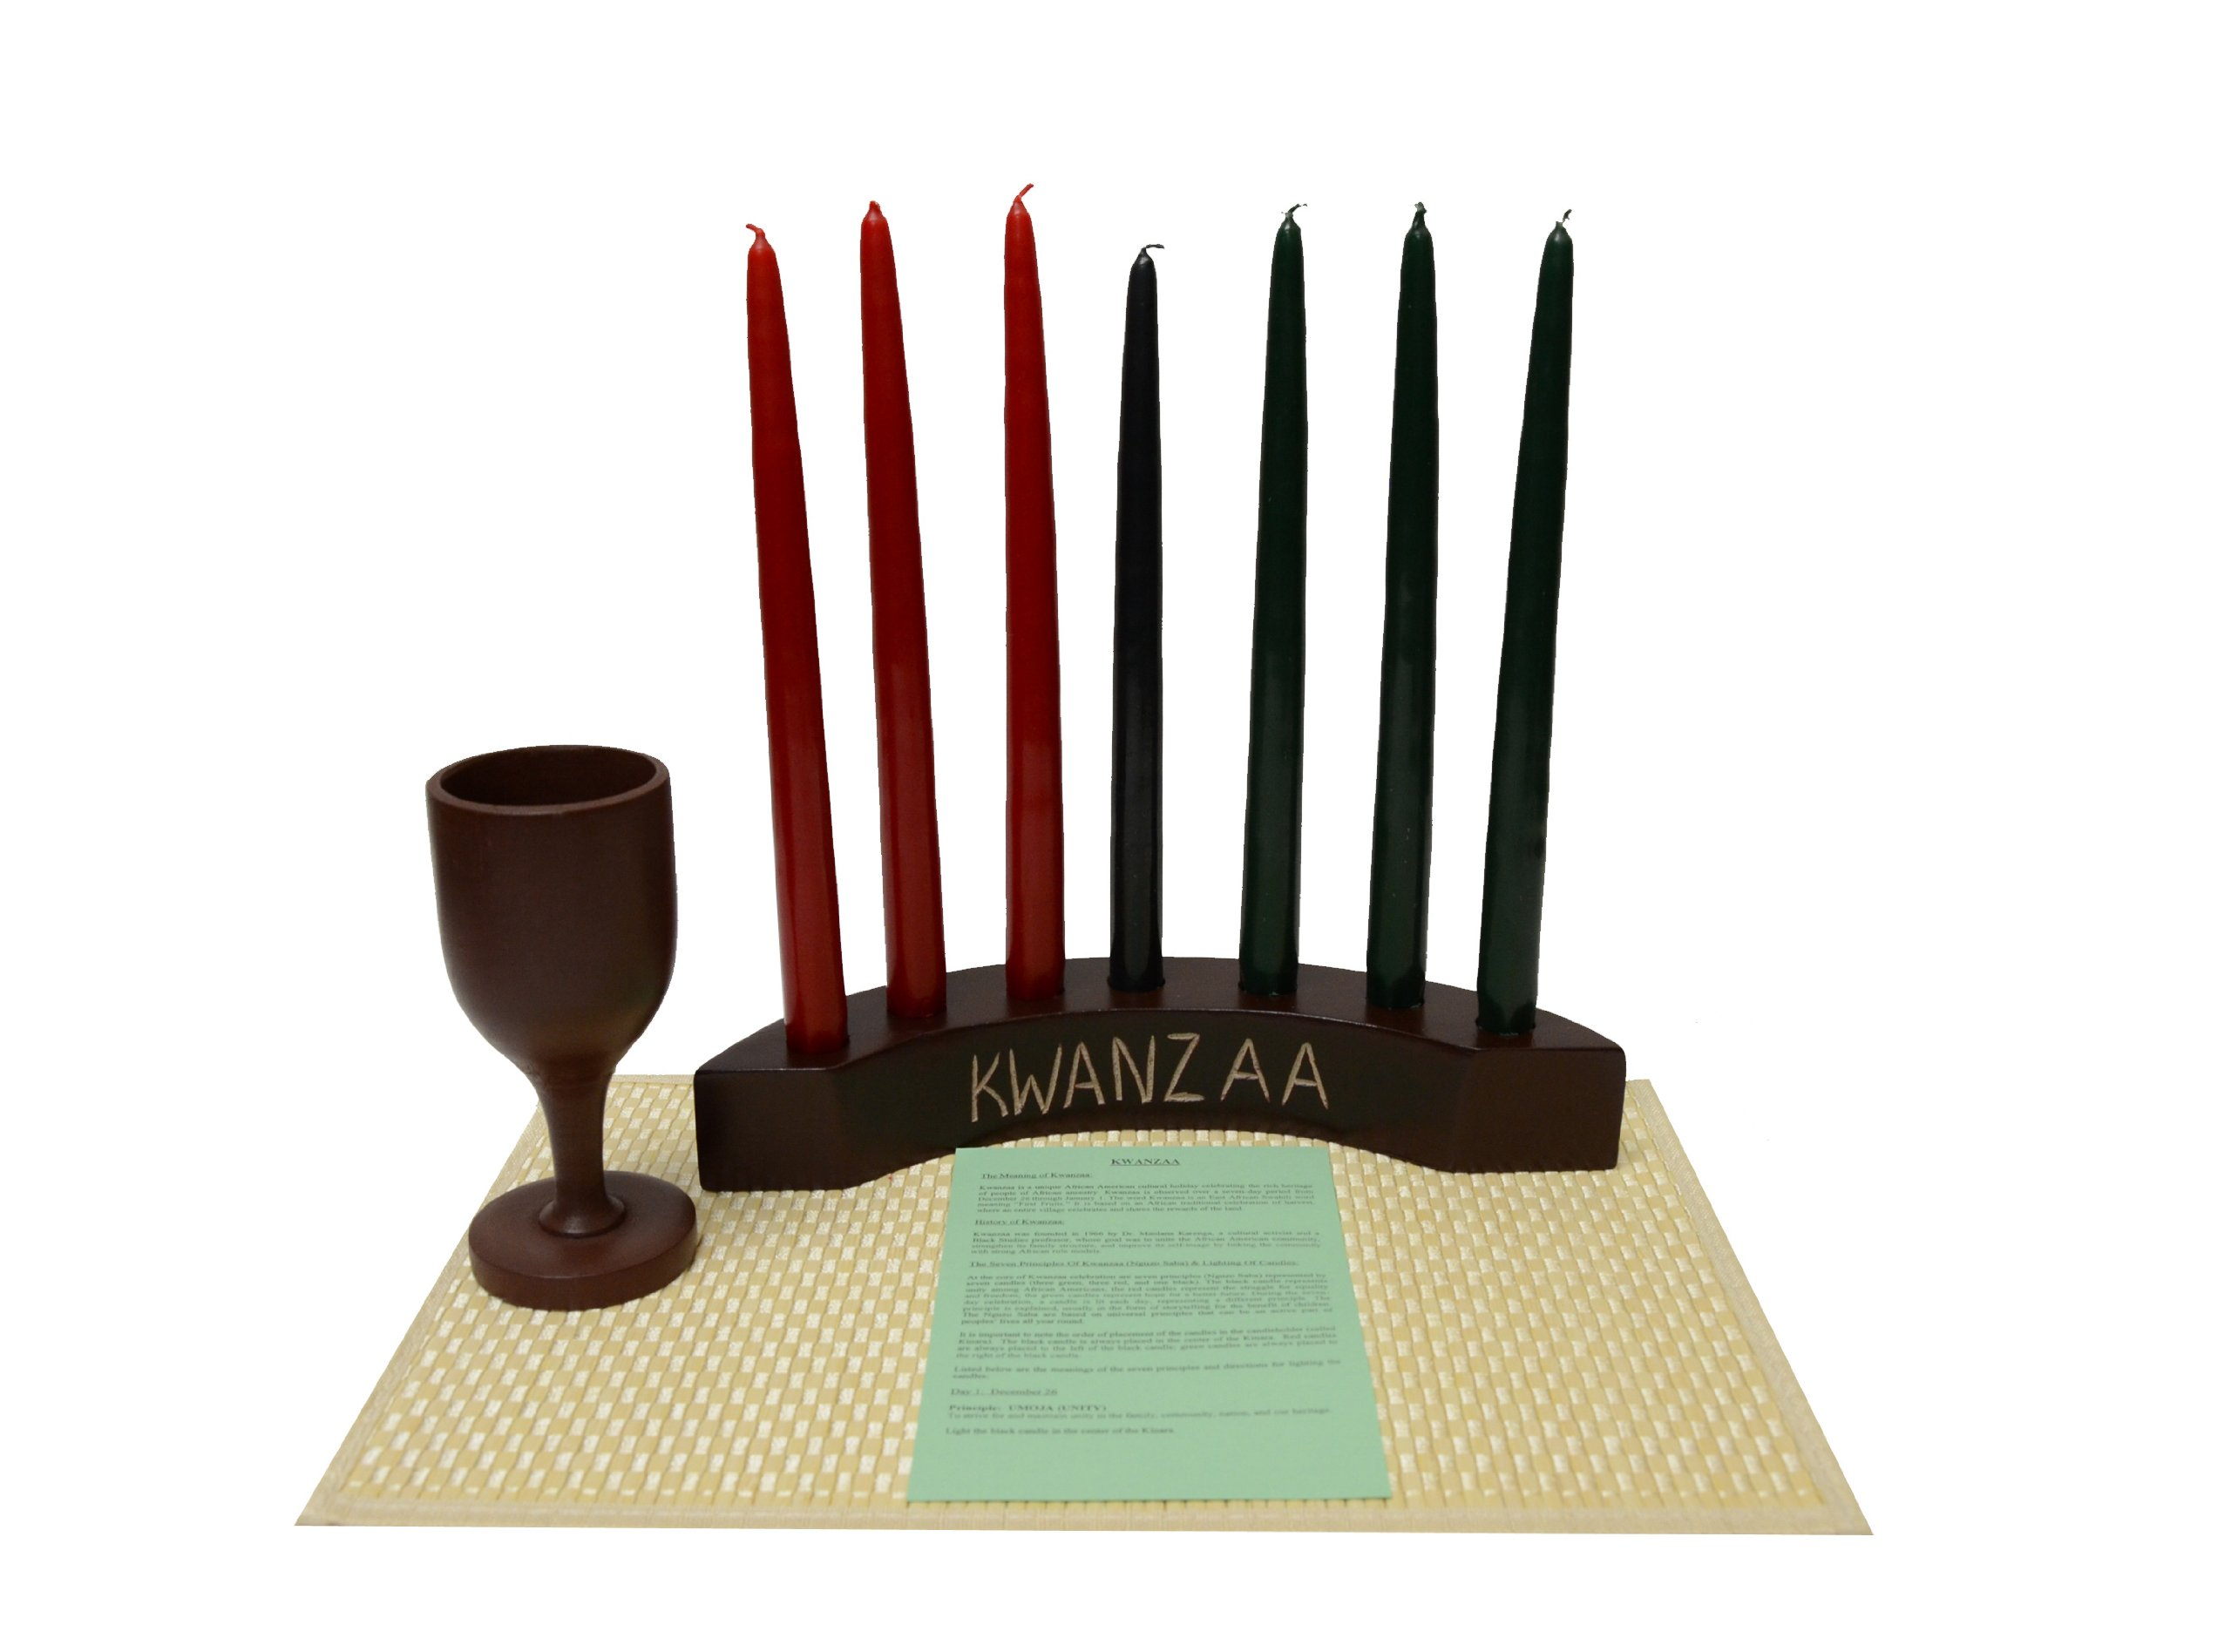 Kwanzaa Arc Candleholder & Celebration Set (Brown) - Made in Ghana by African Heritage Collection